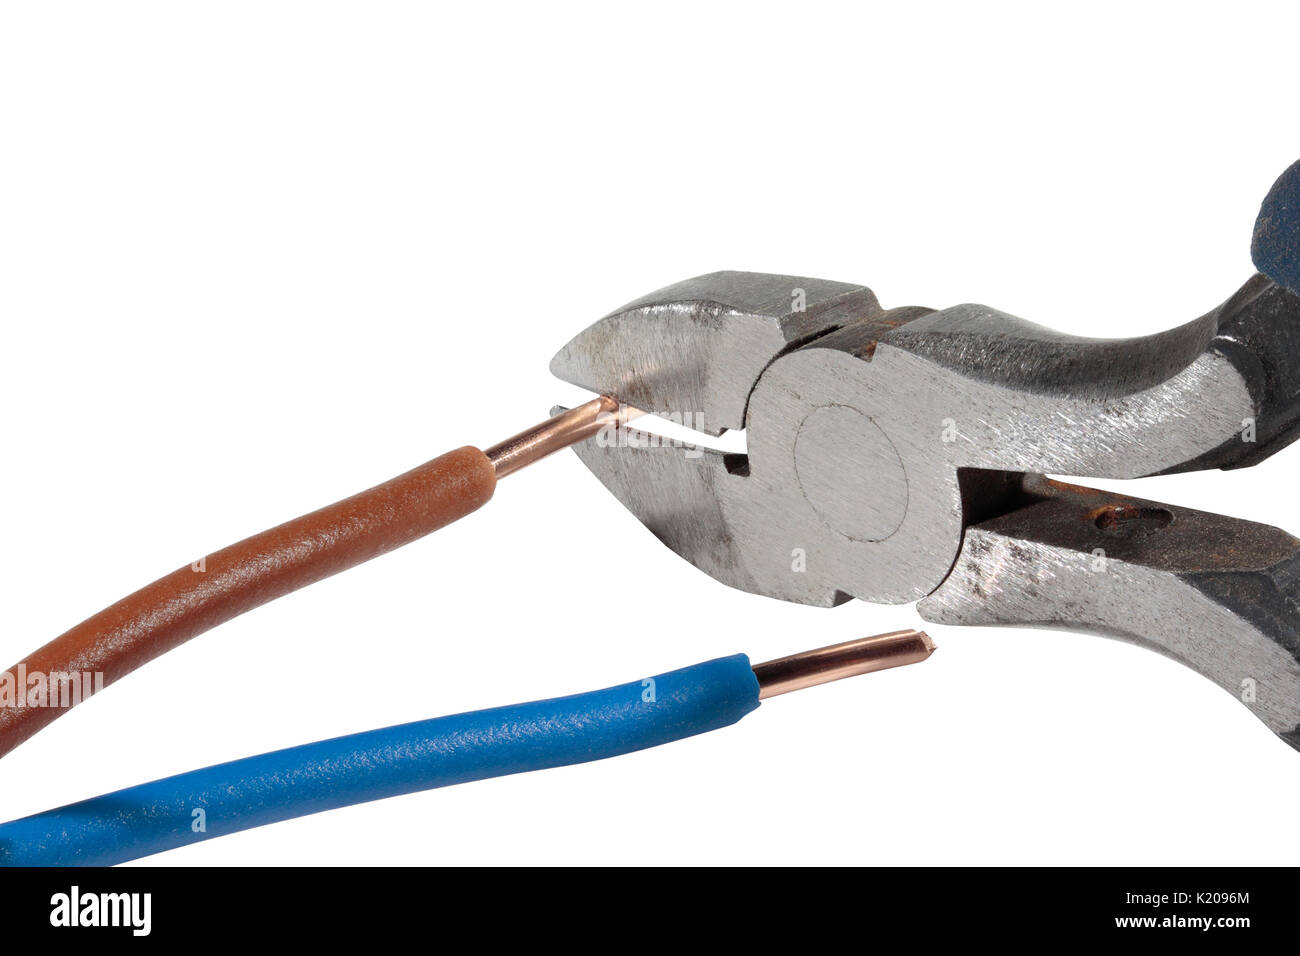 Trimming a live conductor / wire with side cutters / diagonal pliers isolated on a white background - Stock Image